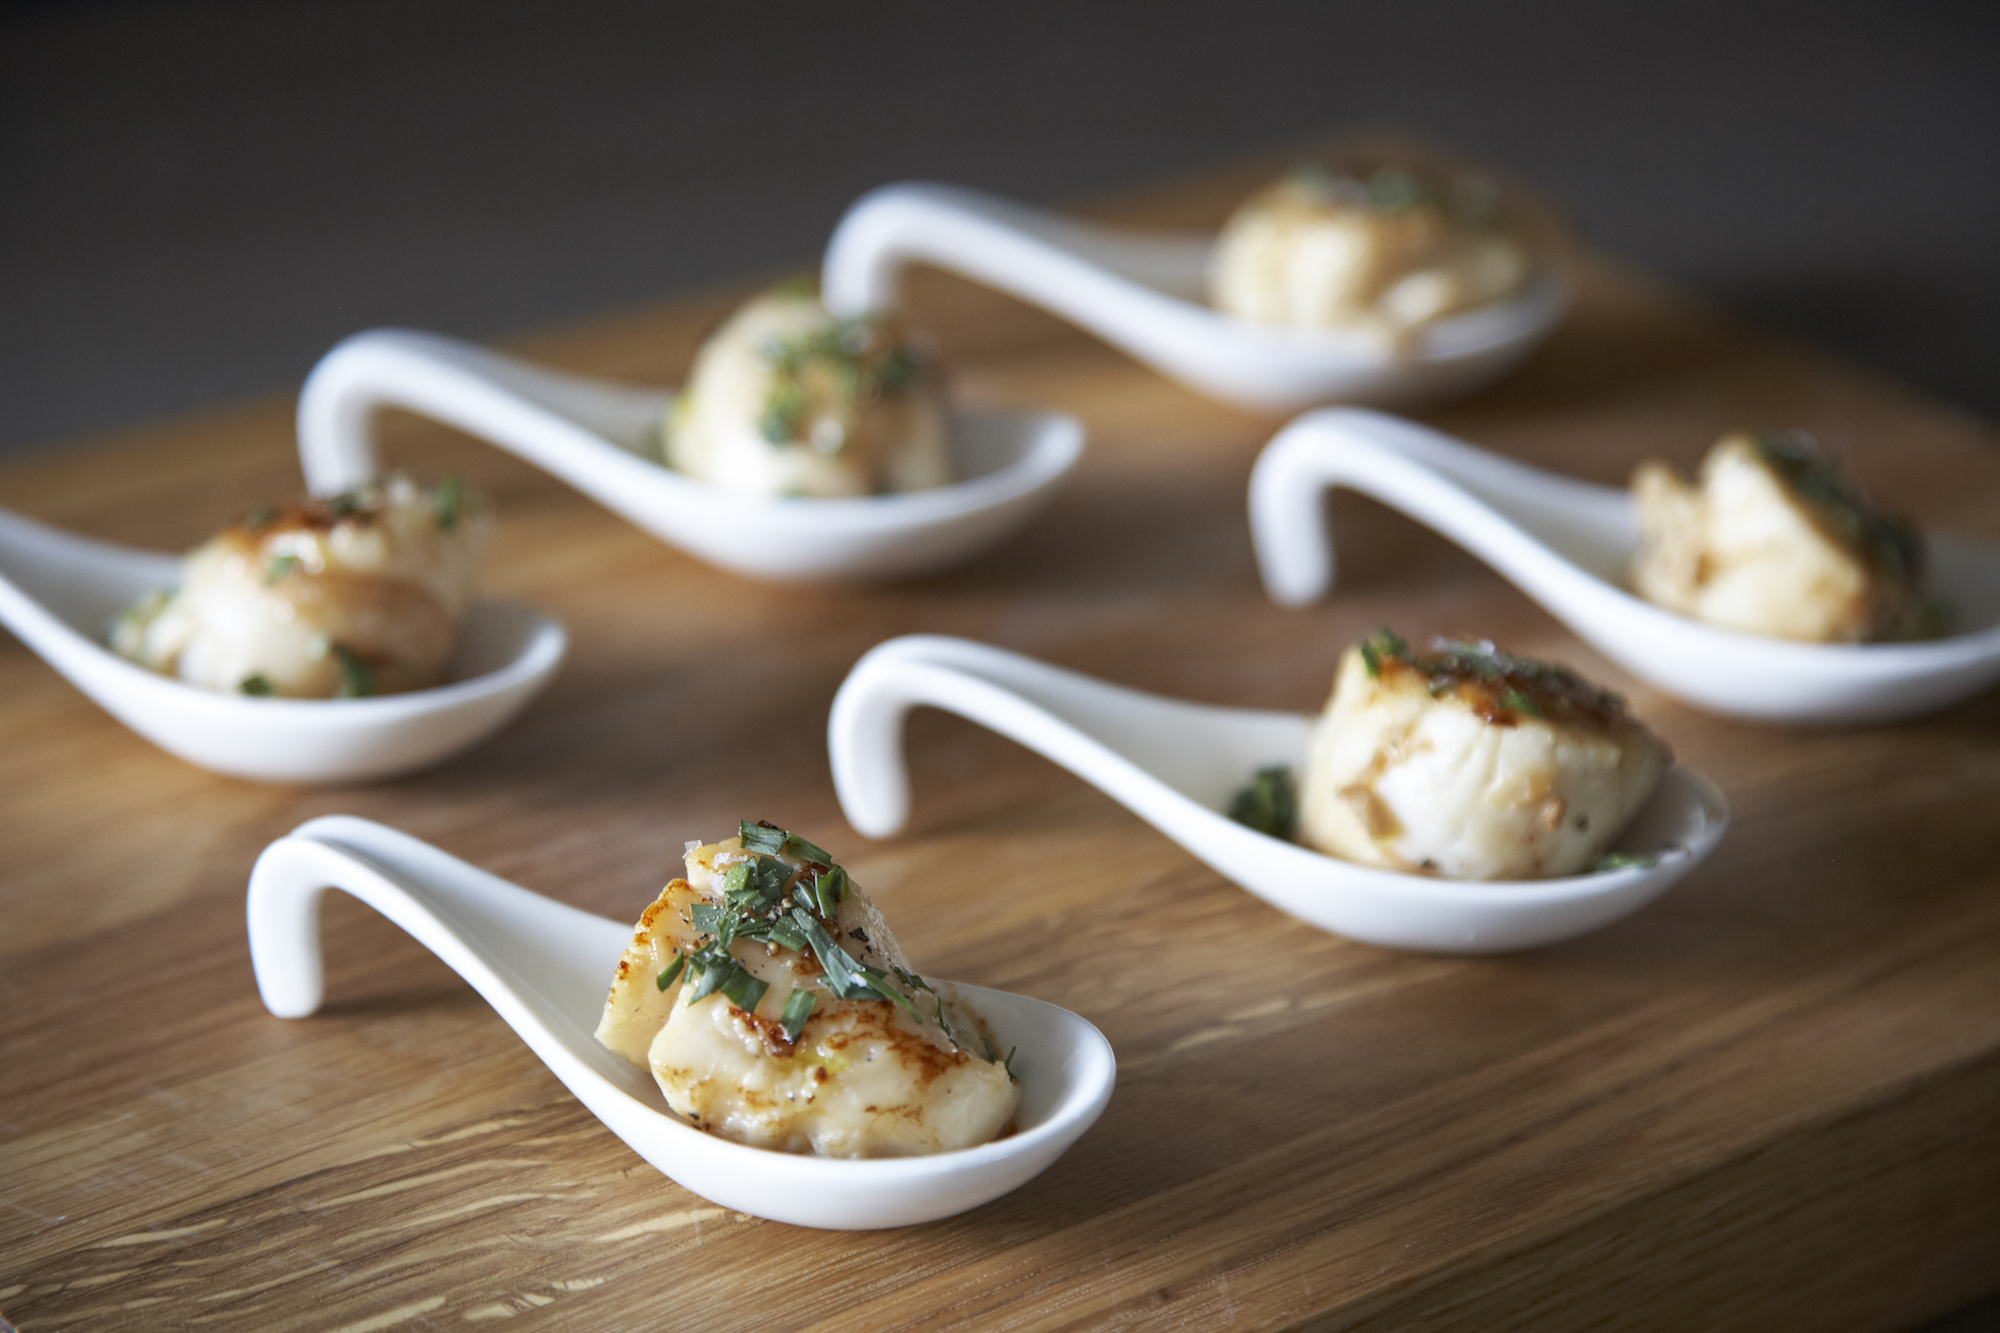 garlic-white-wine-scallops-humphrey-munson-kitchen-1